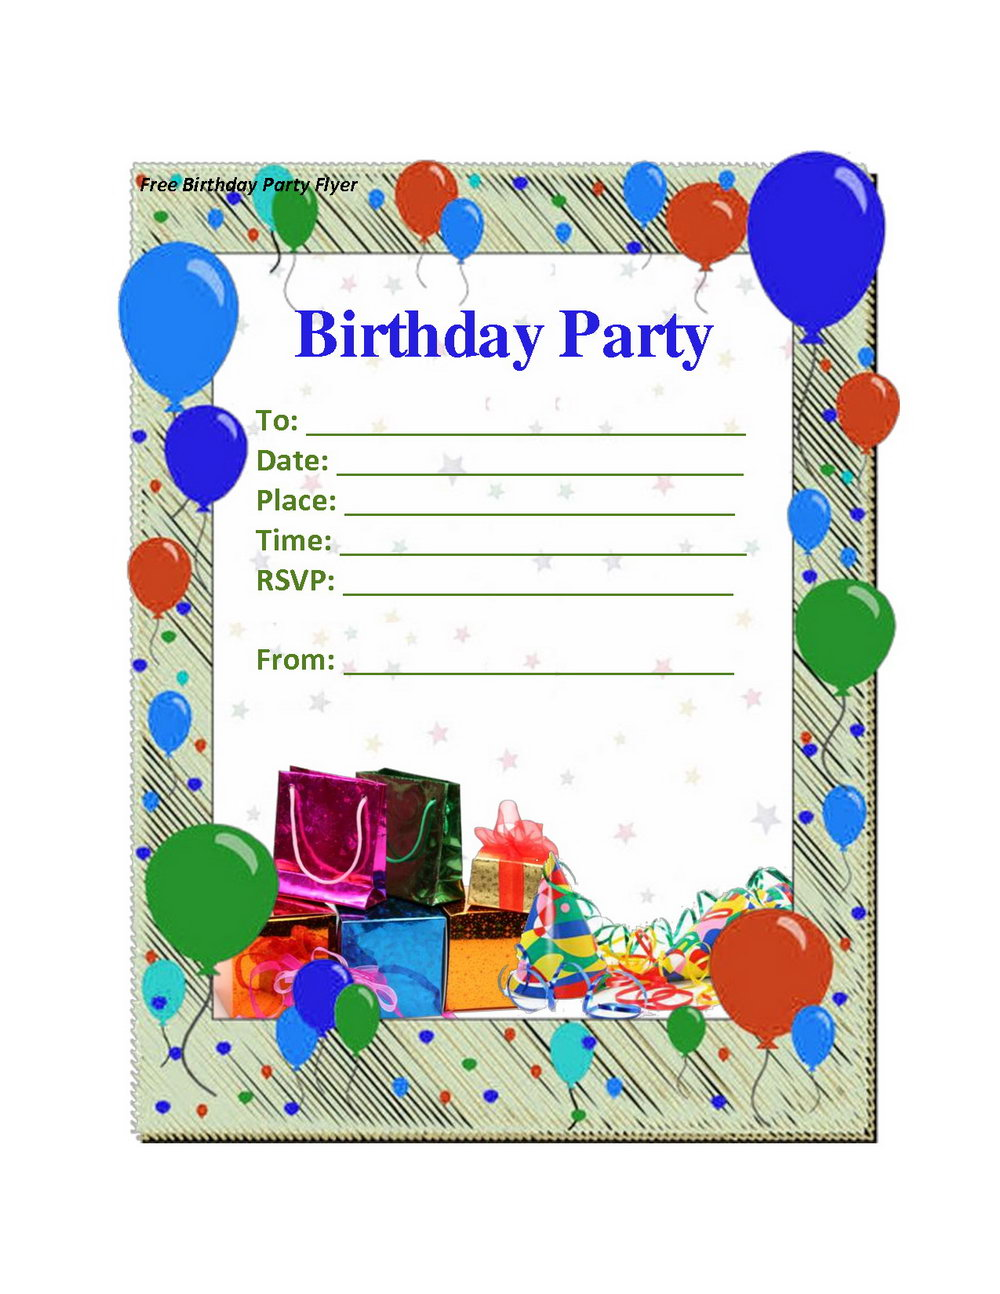 Birthday Party Invitation Template With Photo